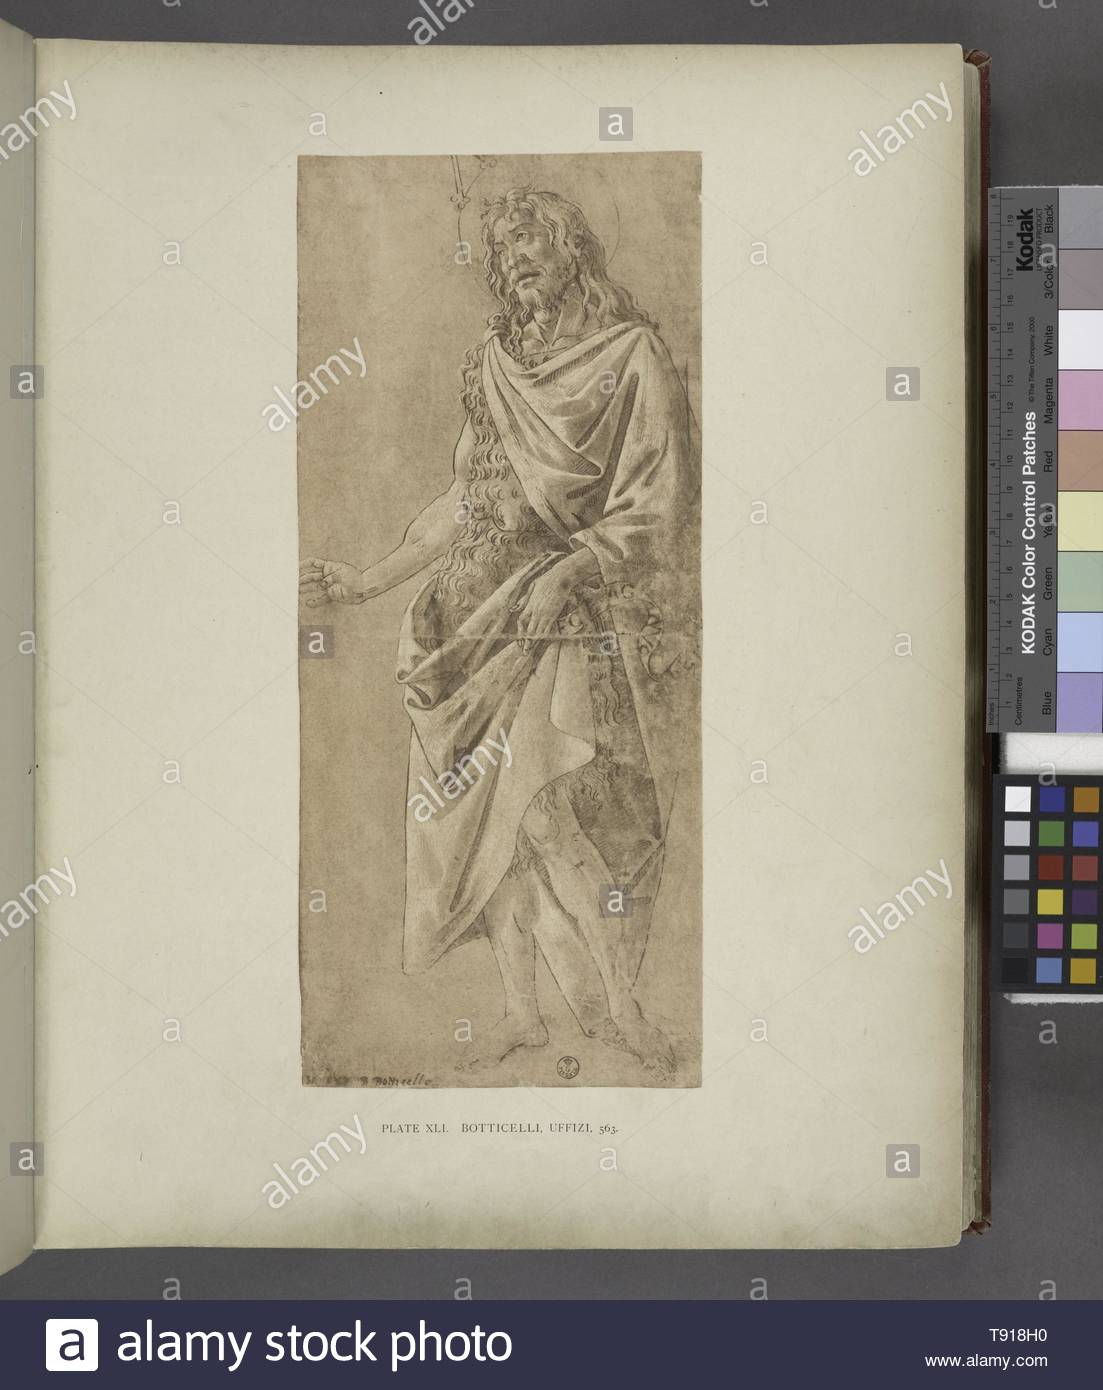 Anonymous-Botticelli, Uffizi, 563  [Study for the baptist standing ] - Stock Image